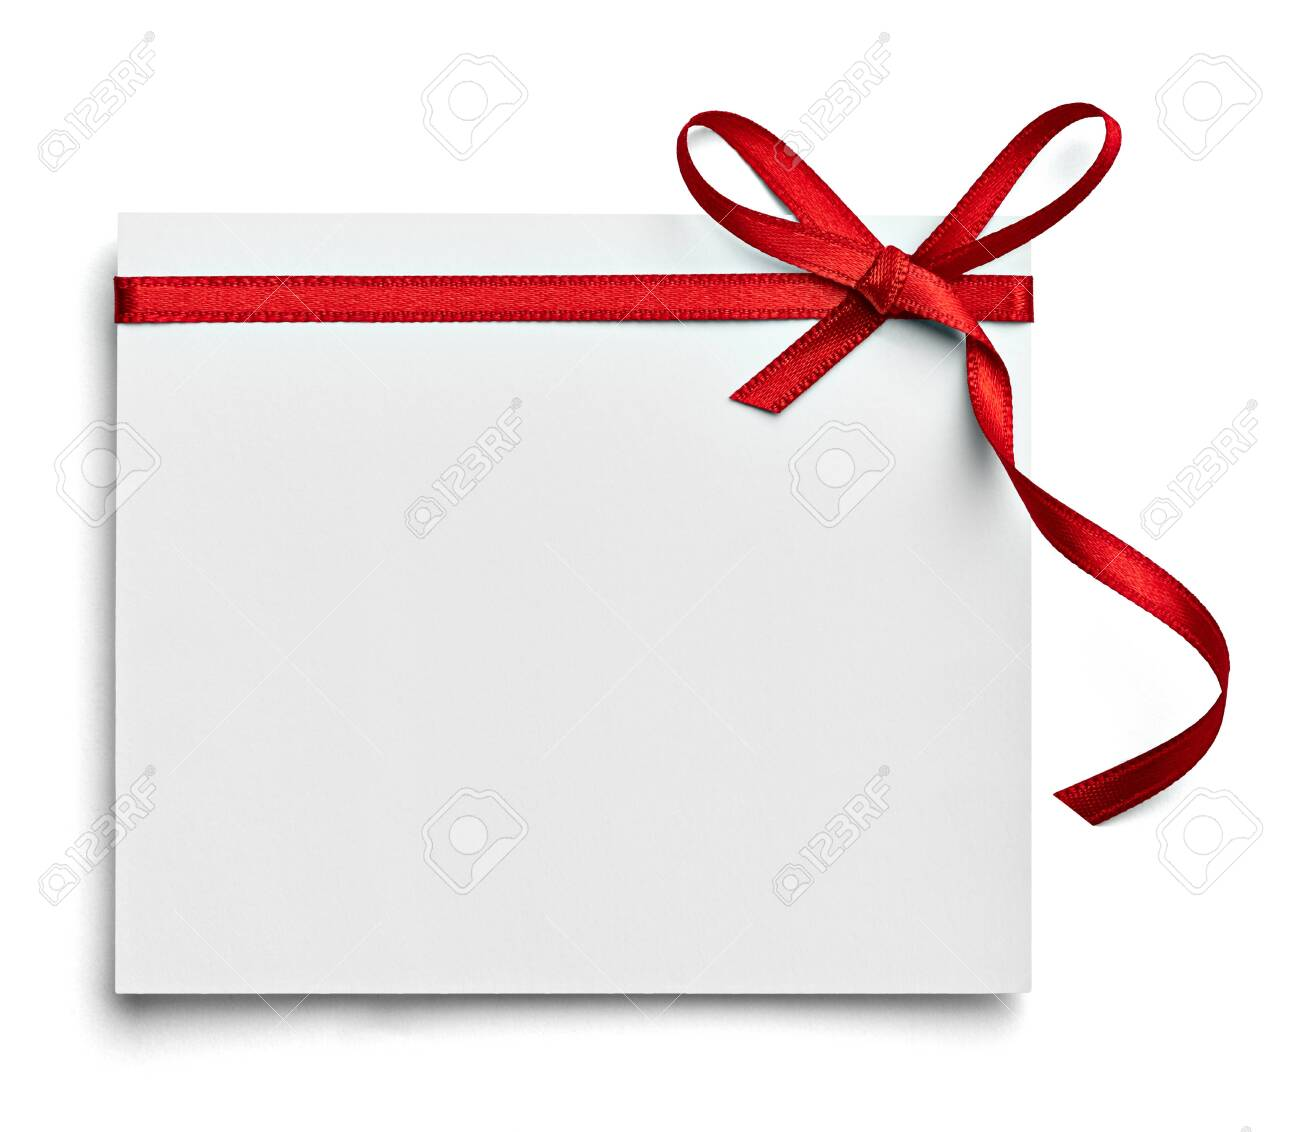 close up of a note card with red ribbon bow on white background - 140668030